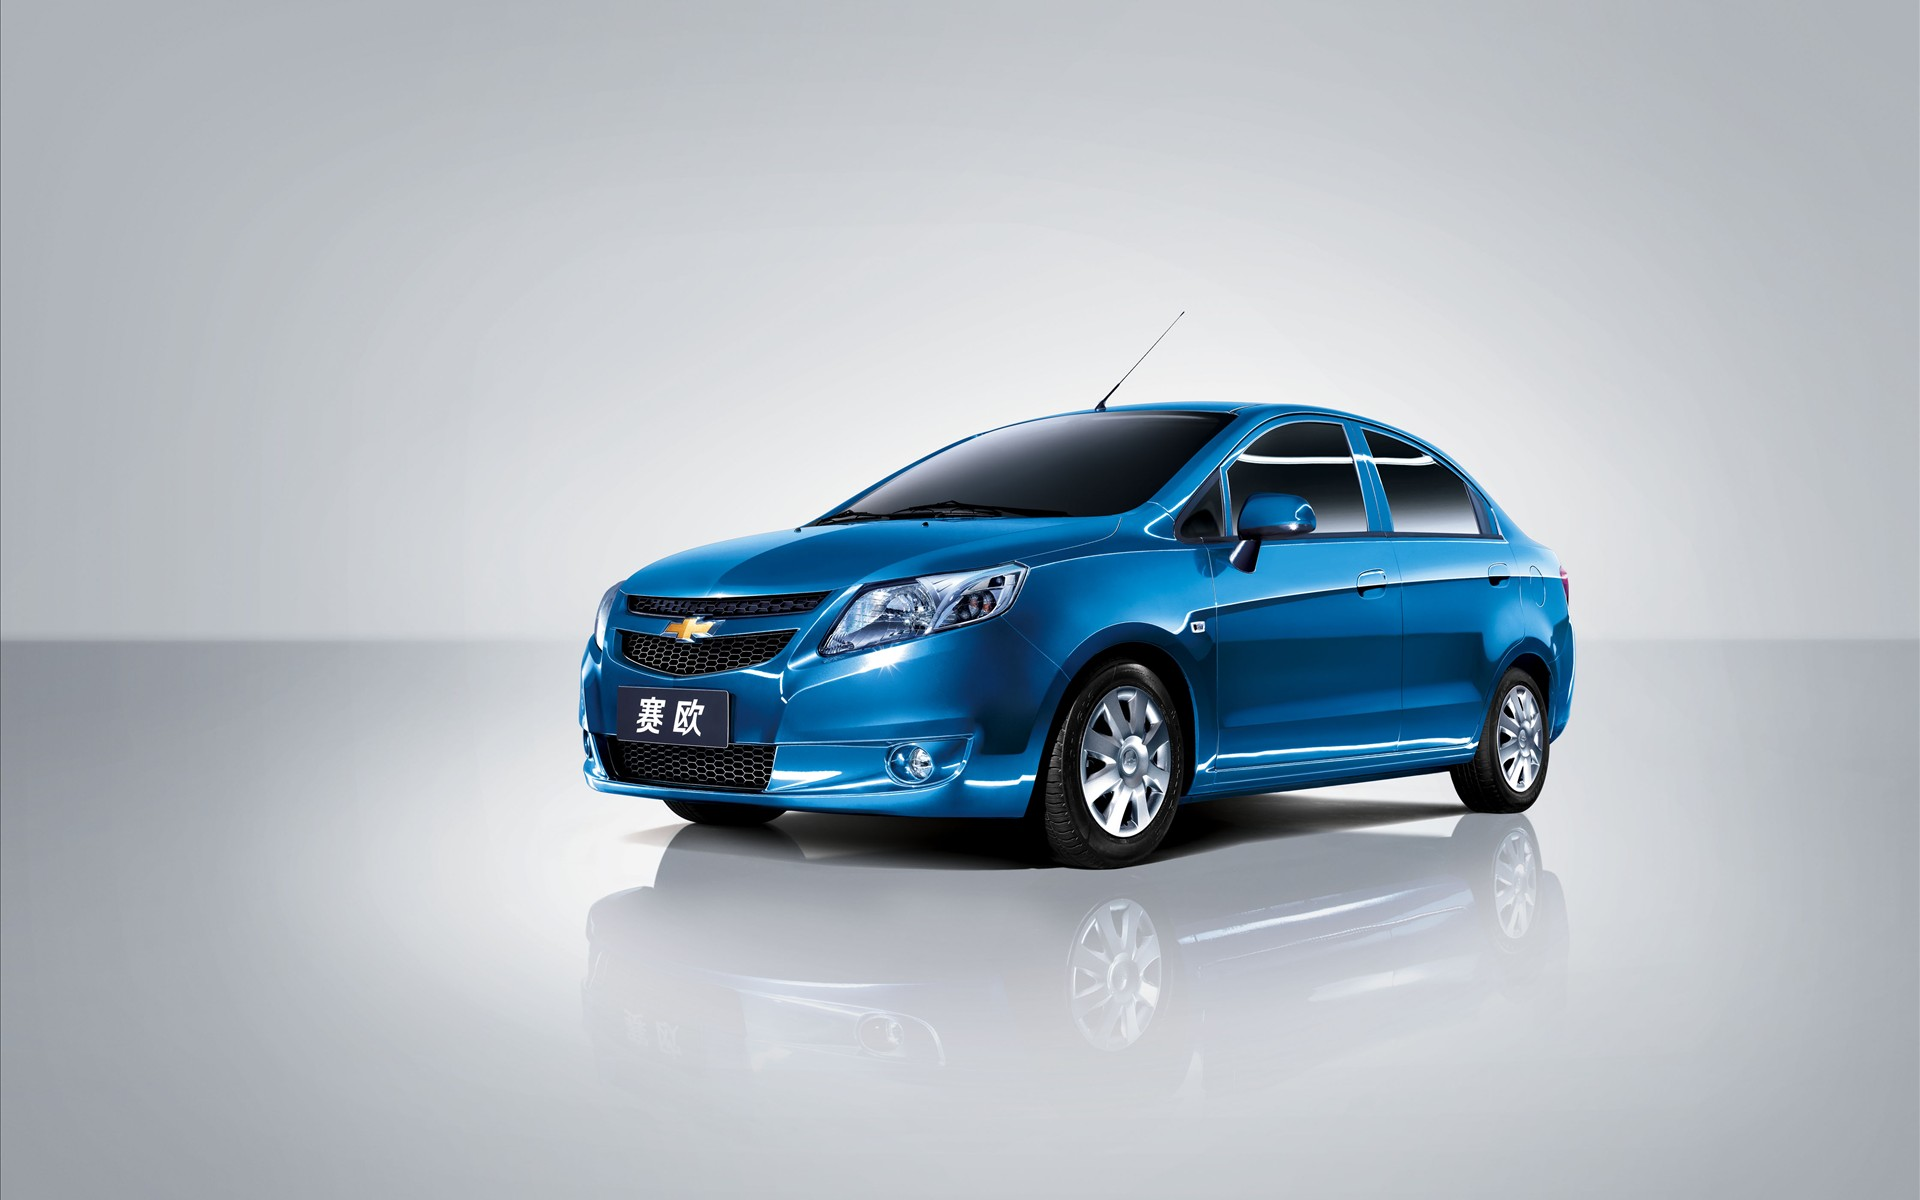 2011 Chevrolet New Car Wallpapers HD Wallpapers 1920x1200